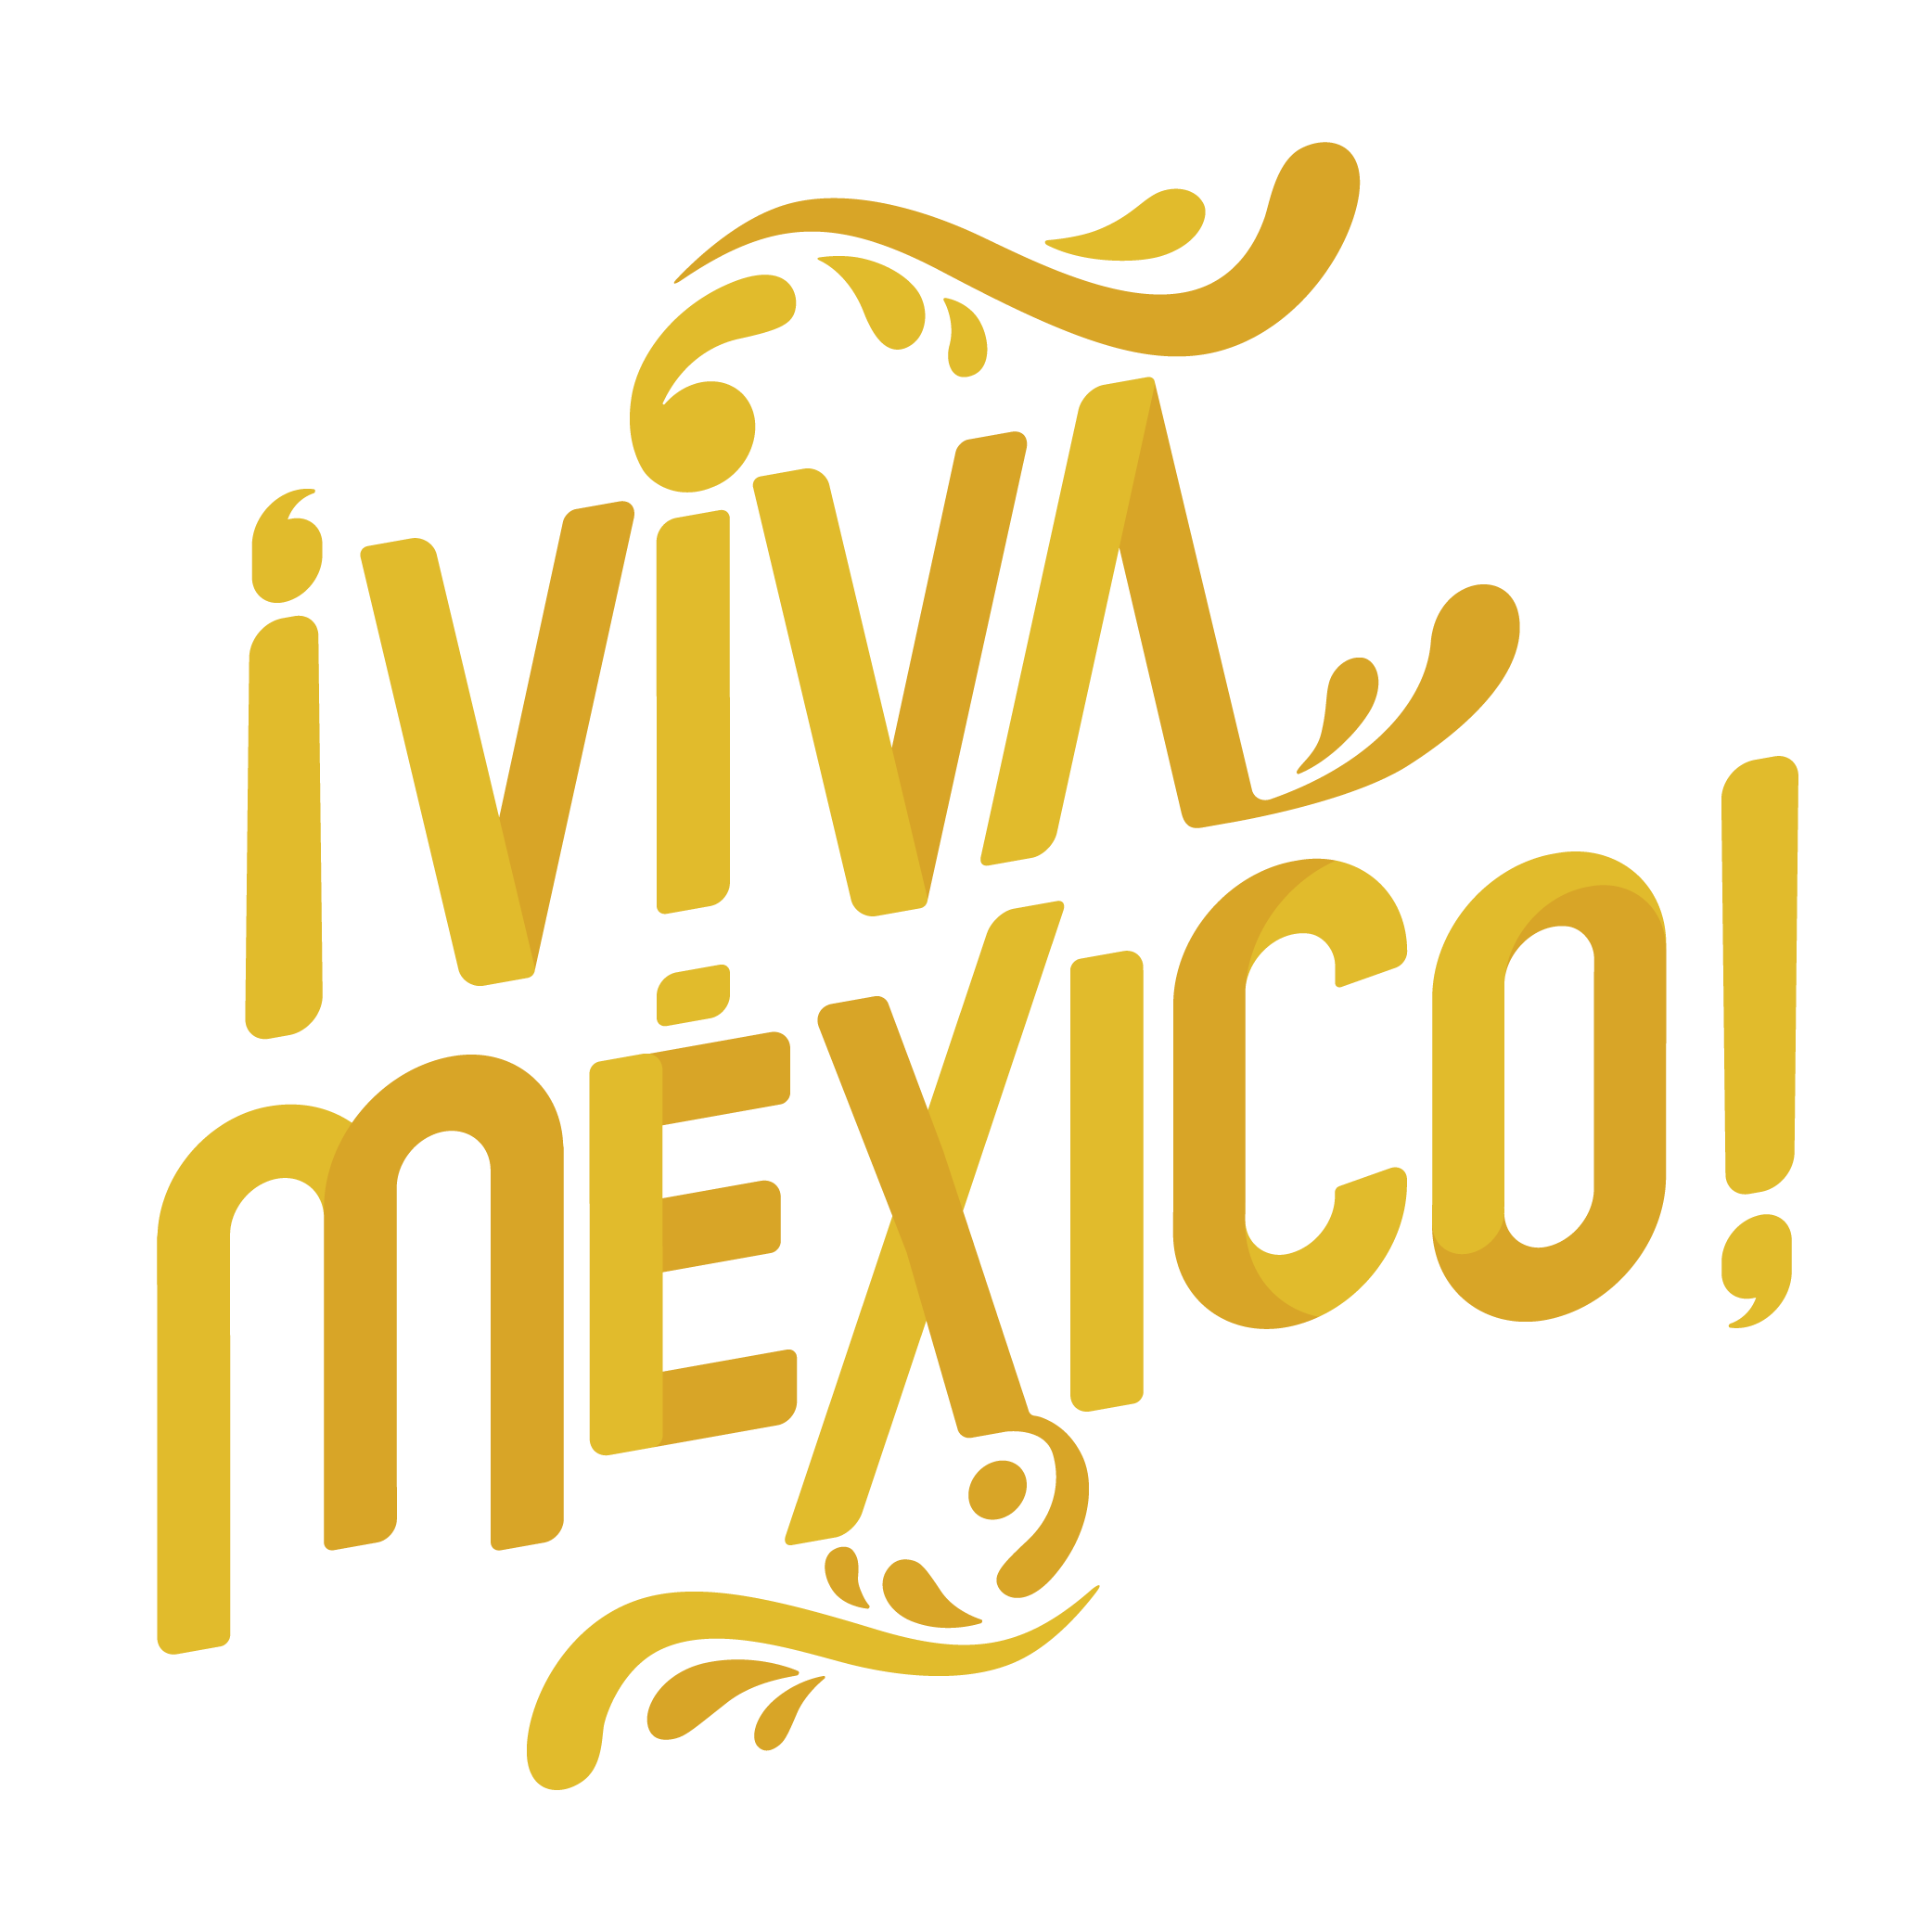 Viva mexico png. Logos aiesec